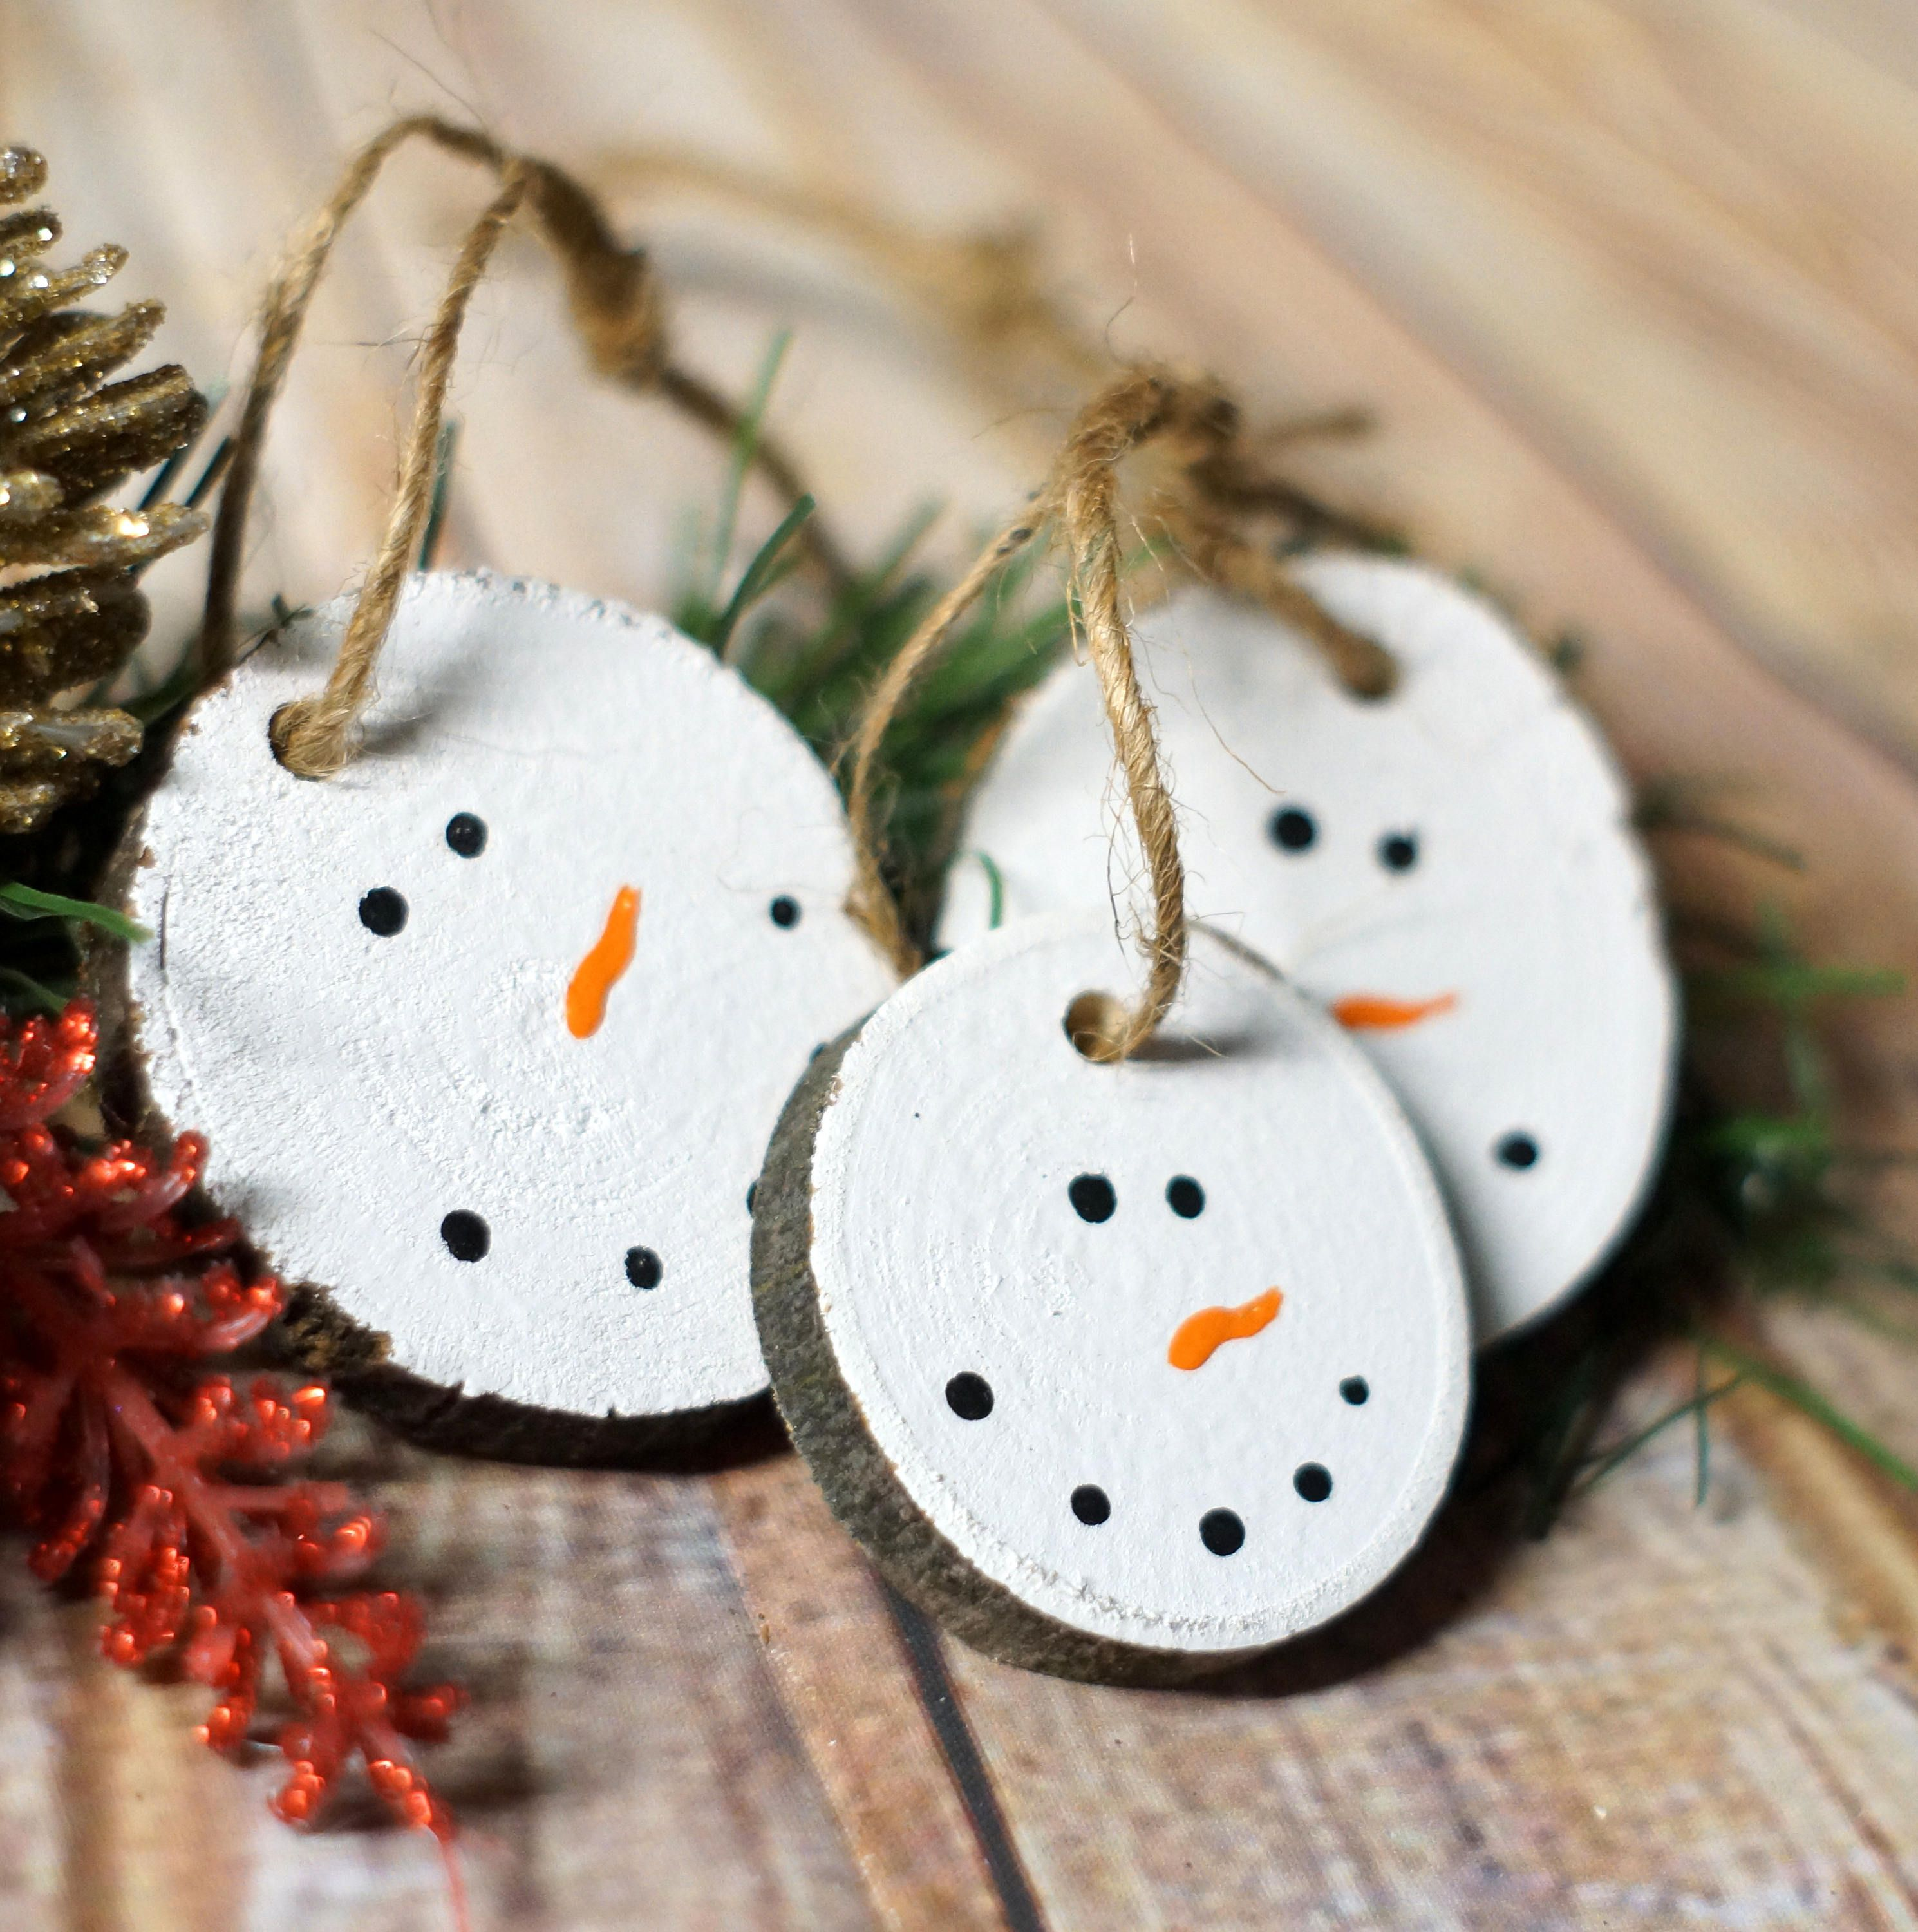 Snowman Ornaments Christmas Ornament Set Rustic Decor Xmas Wood Slice Log Painted